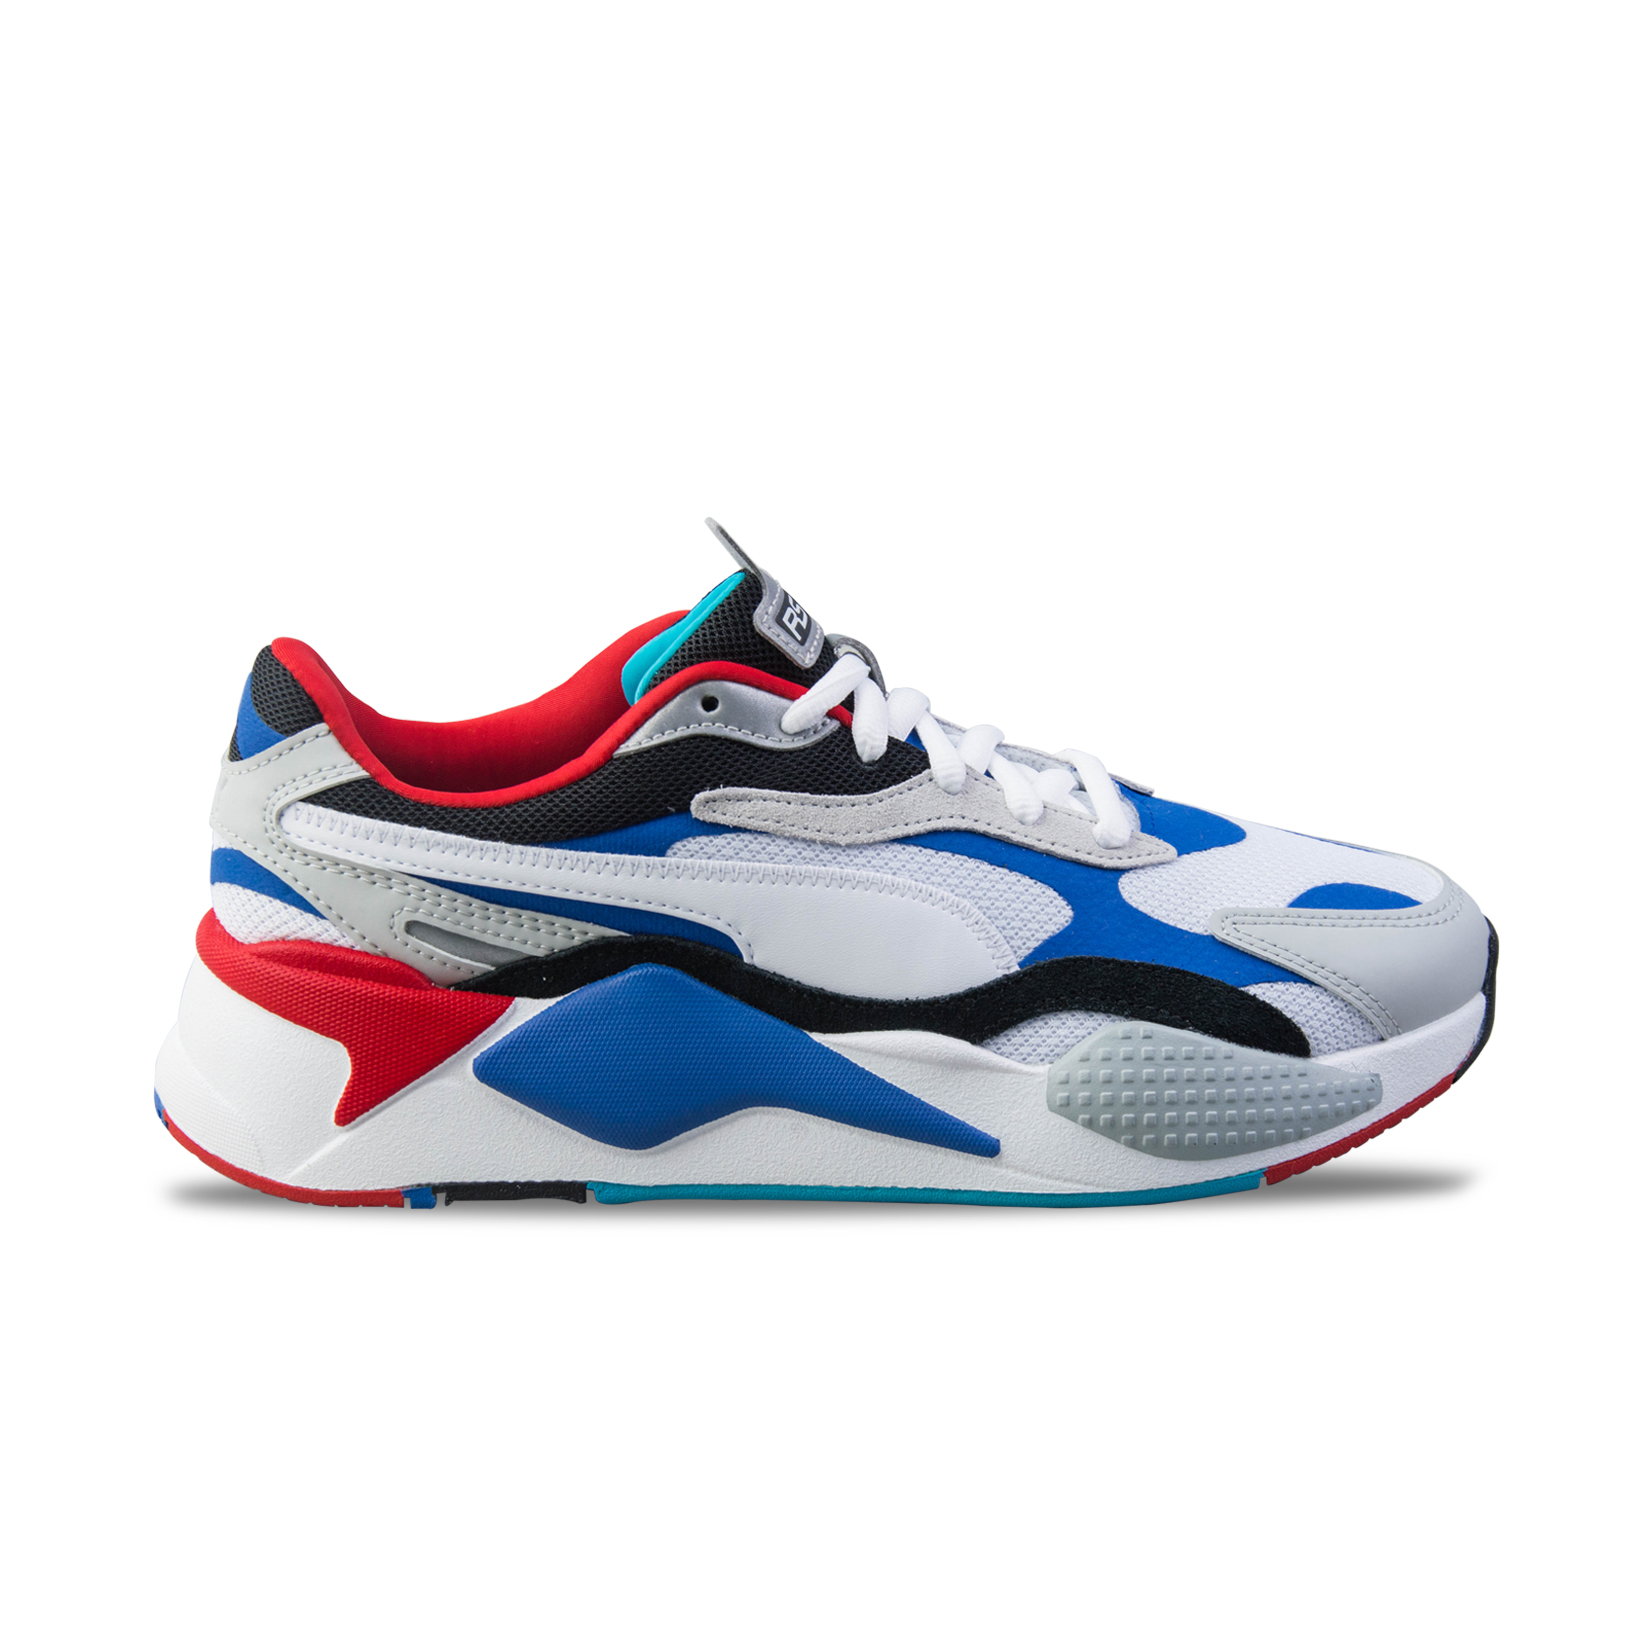 Puma RS-X3 Puzzle White - Blue - Red